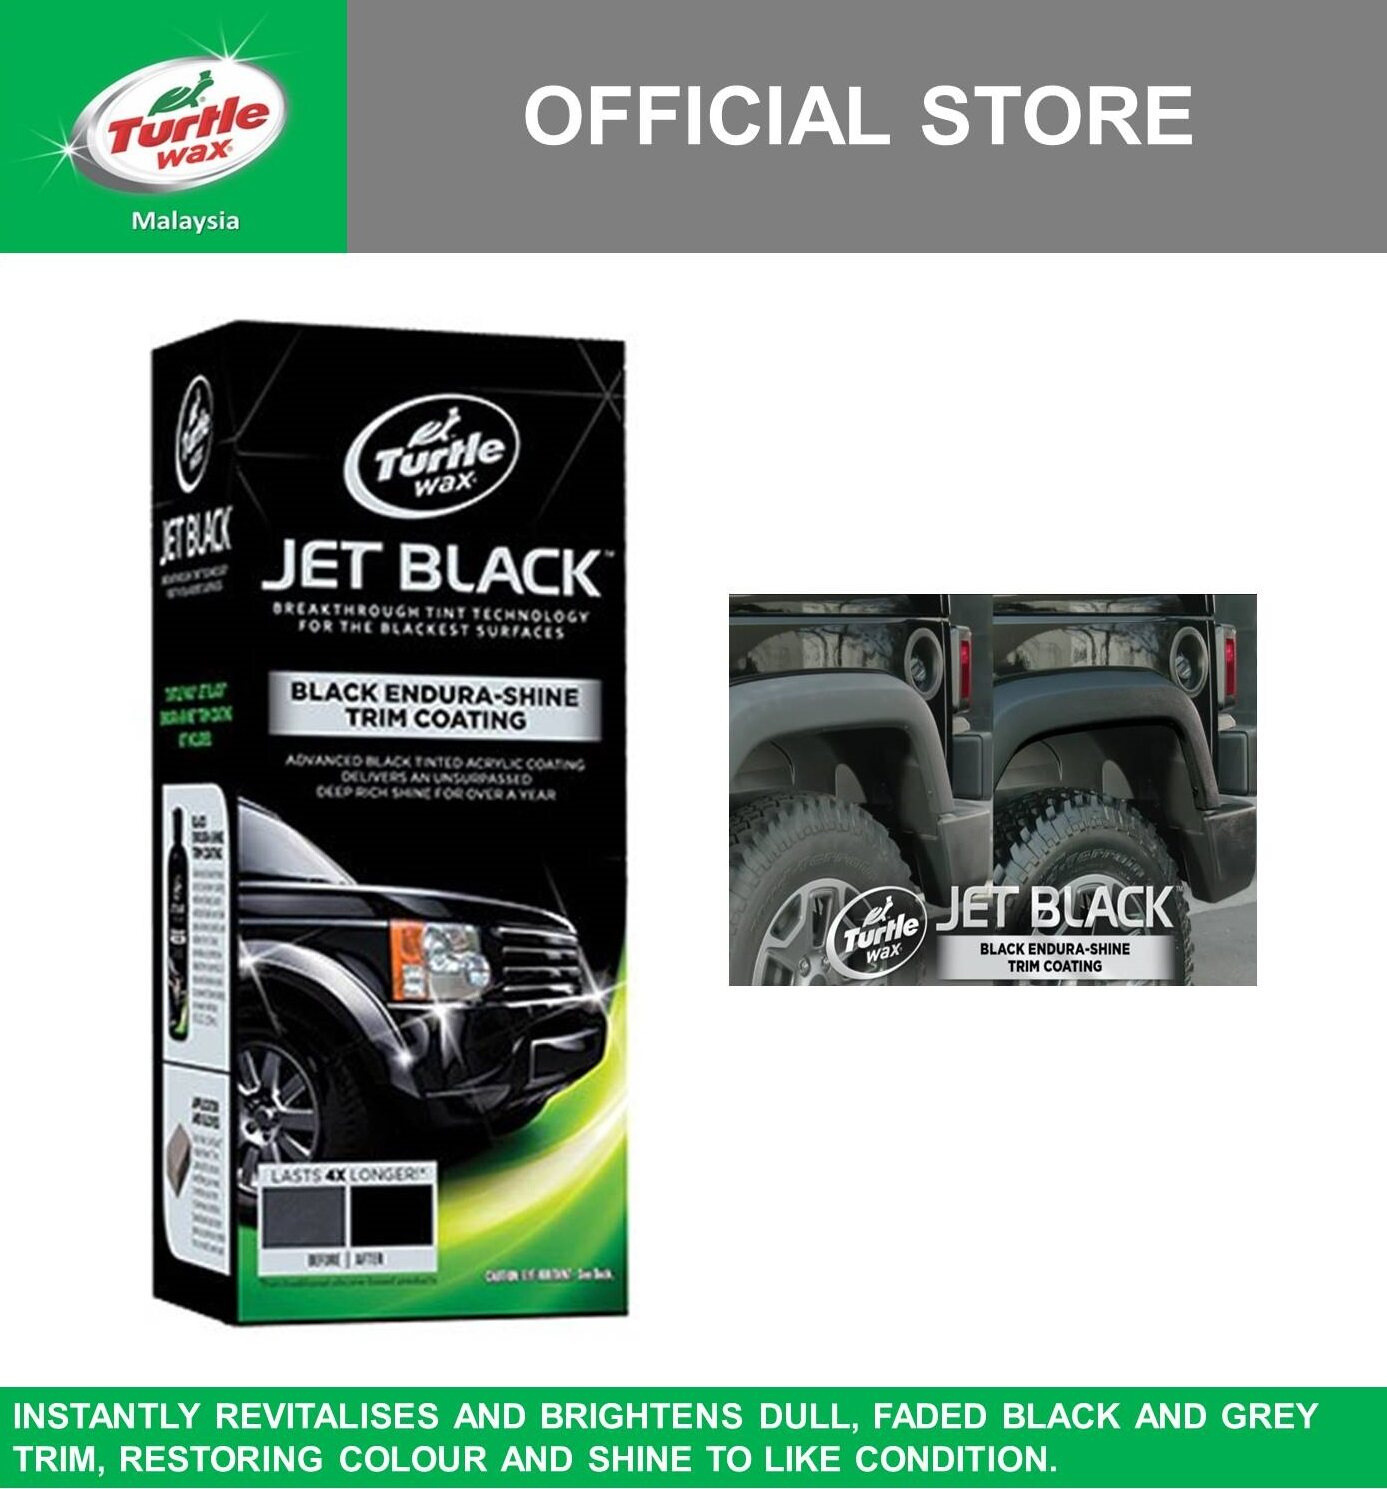 Turtle Wax Jet Black Black Endura-Shine Trim Coating T-128